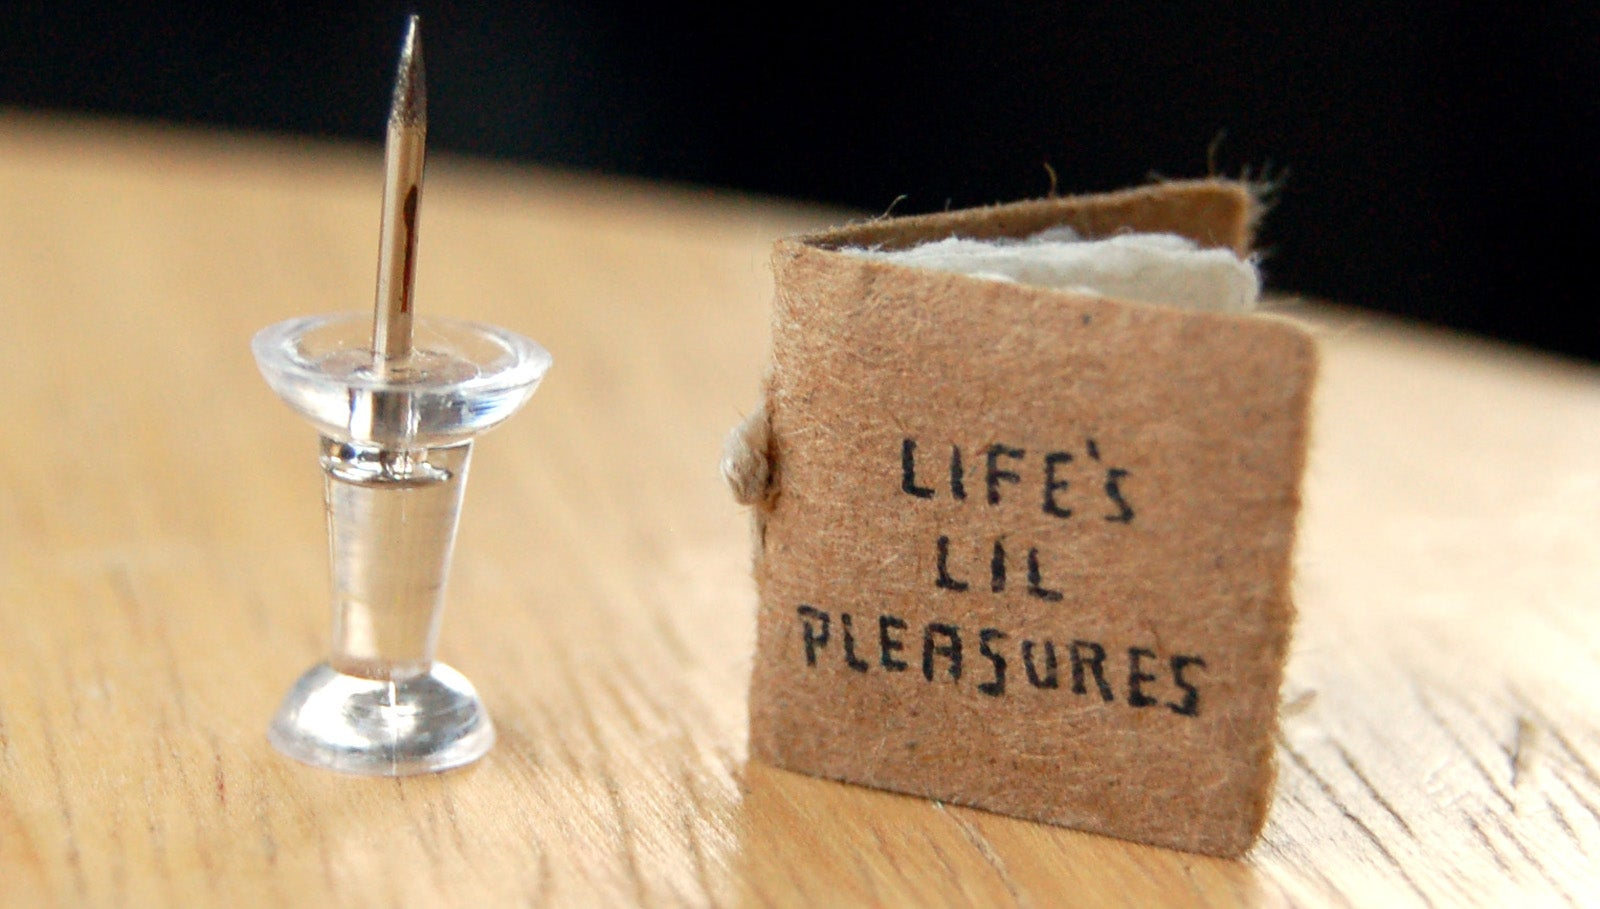 the little pleasures of life Life's lil pleasures was created by illustrator and designer evan lorenzen lorenzen has spent the last year building a library of micro books with diverse themes, including one that details major events in earth's history, a tiny book of big words, and a field guide to cereal.